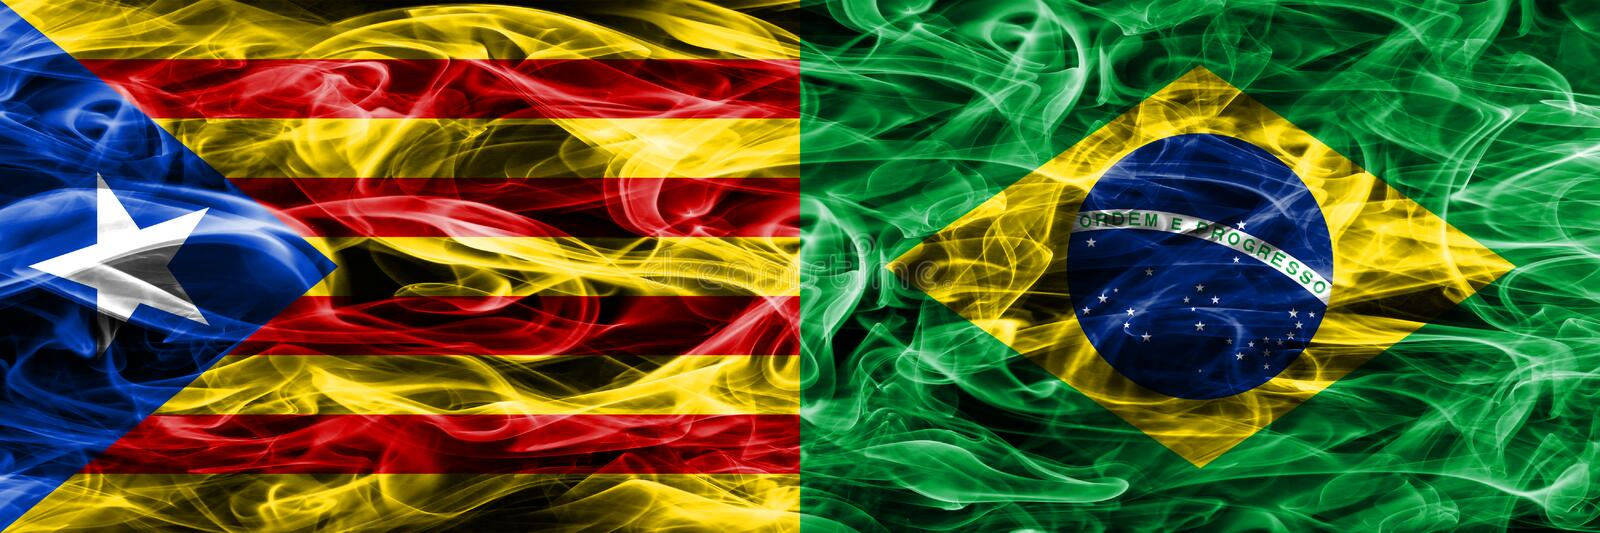 Catalonia vs Brazil copy smoke flags placed side by side. Thick colored silky smoke flags of Catalan and Brazil copy.  vector illustration